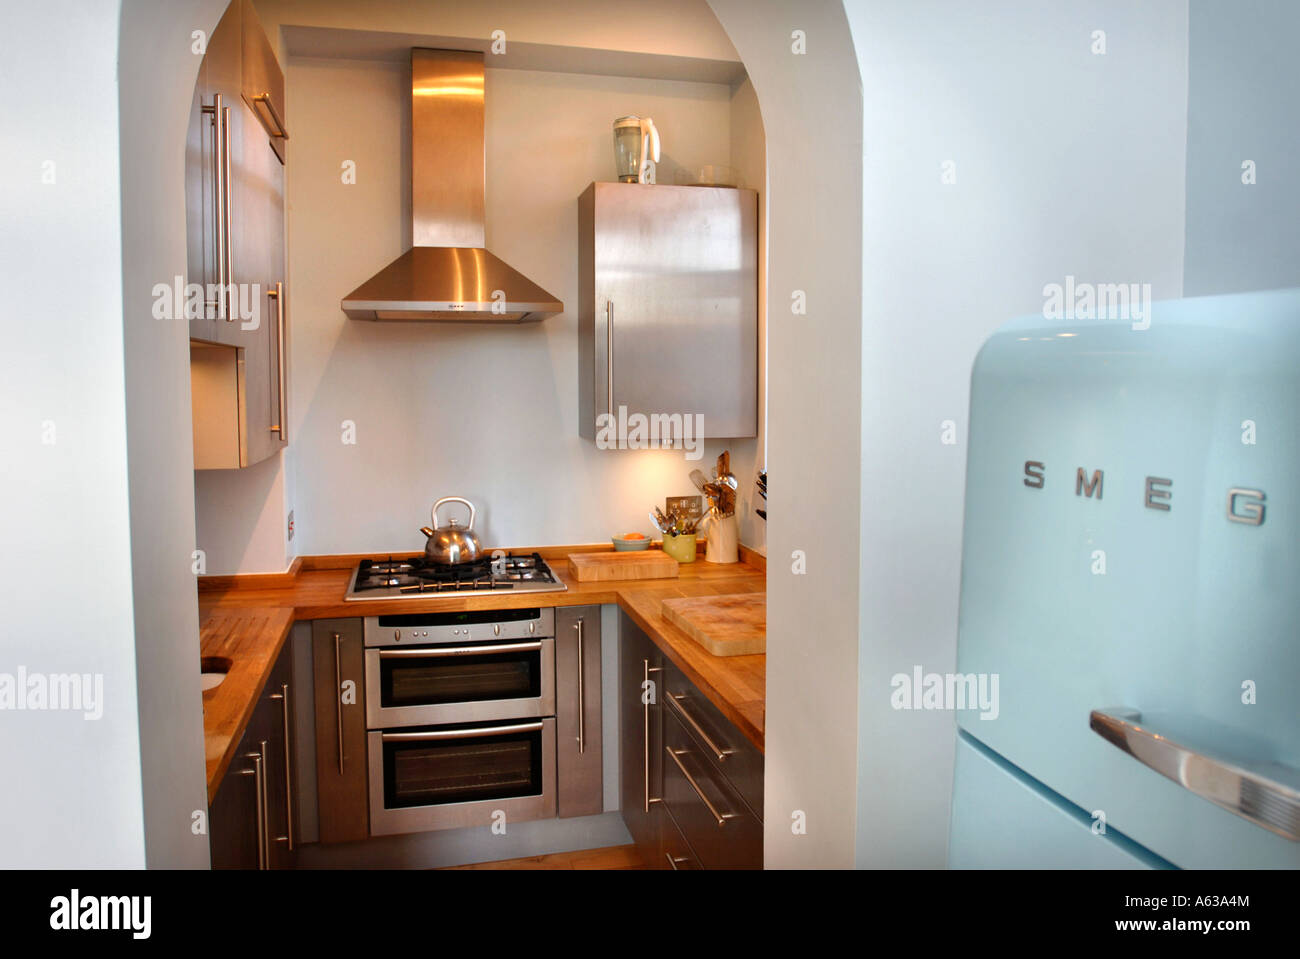 smeg stockfotos smeg bilder alamy. Black Bedroom Furniture Sets. Home Design Ideas